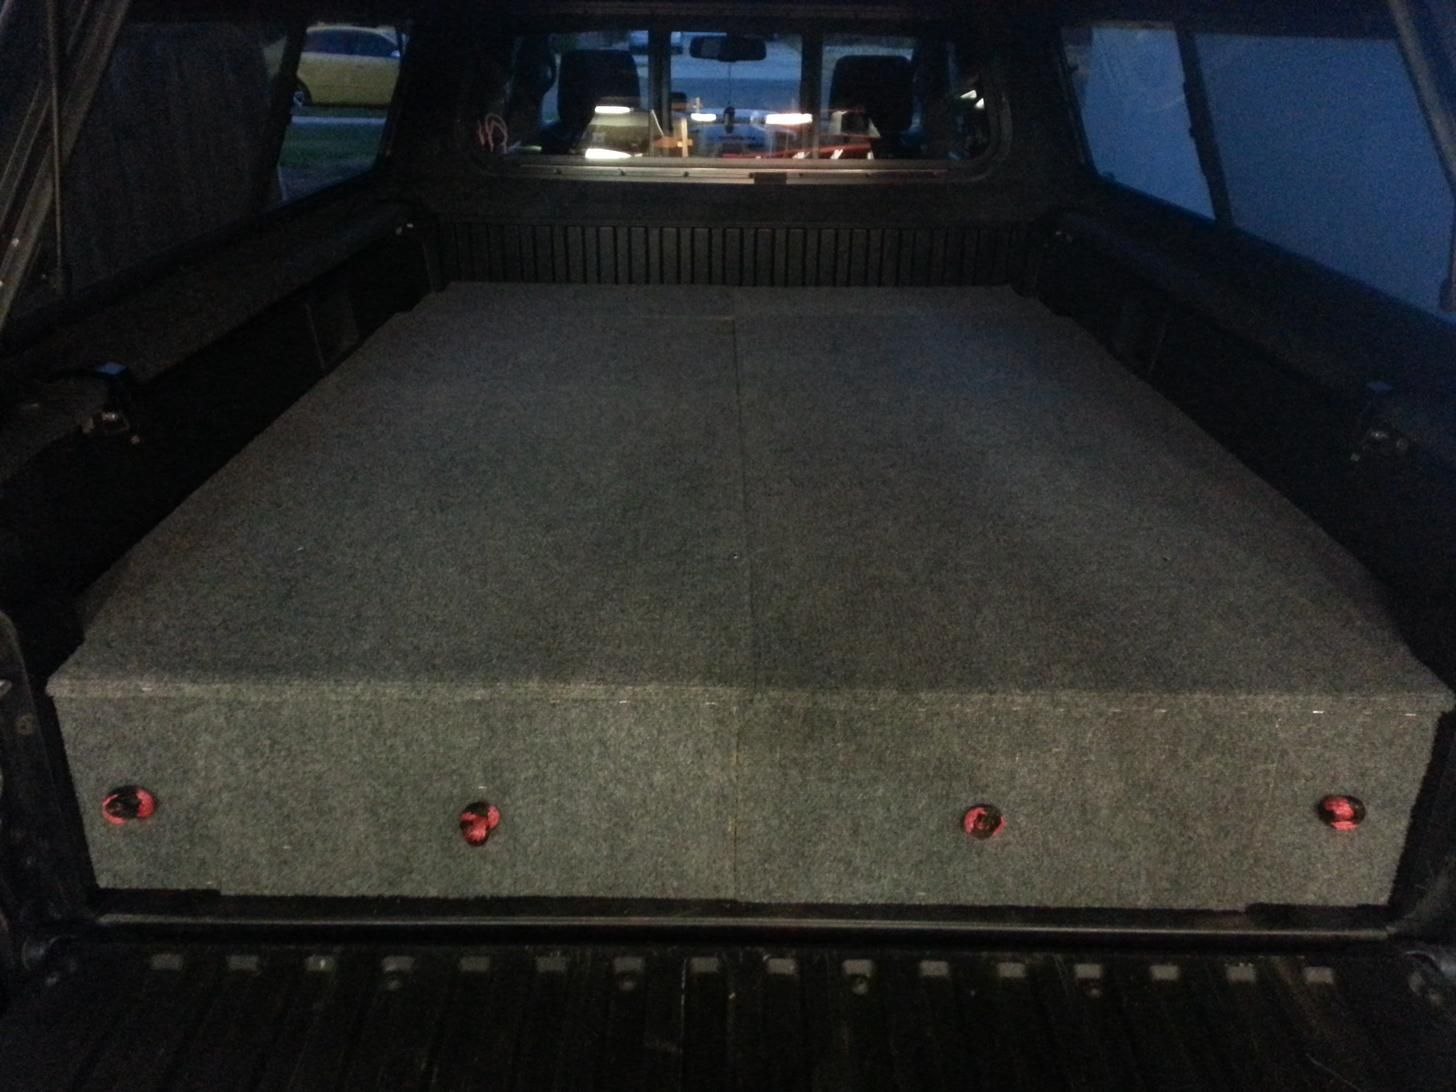 Truck Bed RV Phase I in 2020 Truck bed drawers, Truck